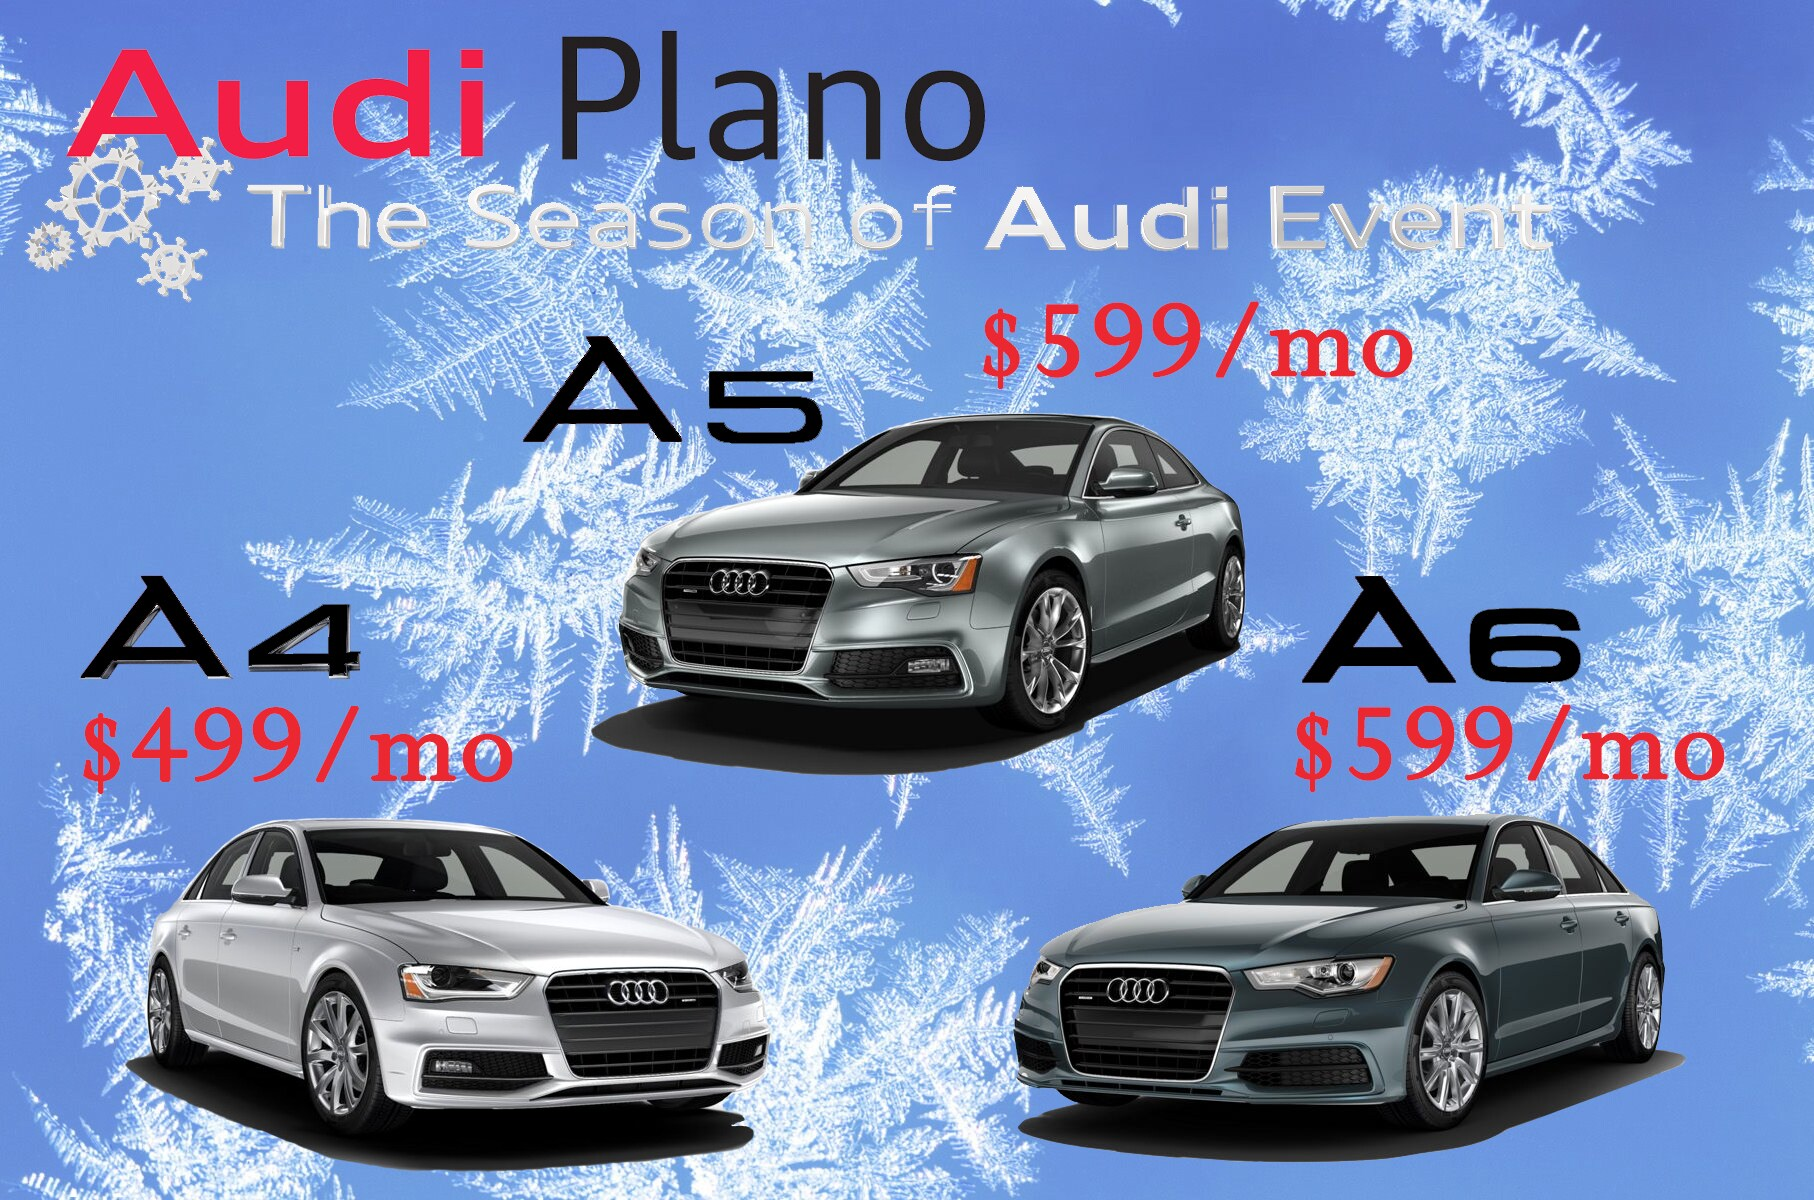 audi a4 a5 a6 lease offers plano tx. Black Bedroom Furniture Sets. Home Design Ideas